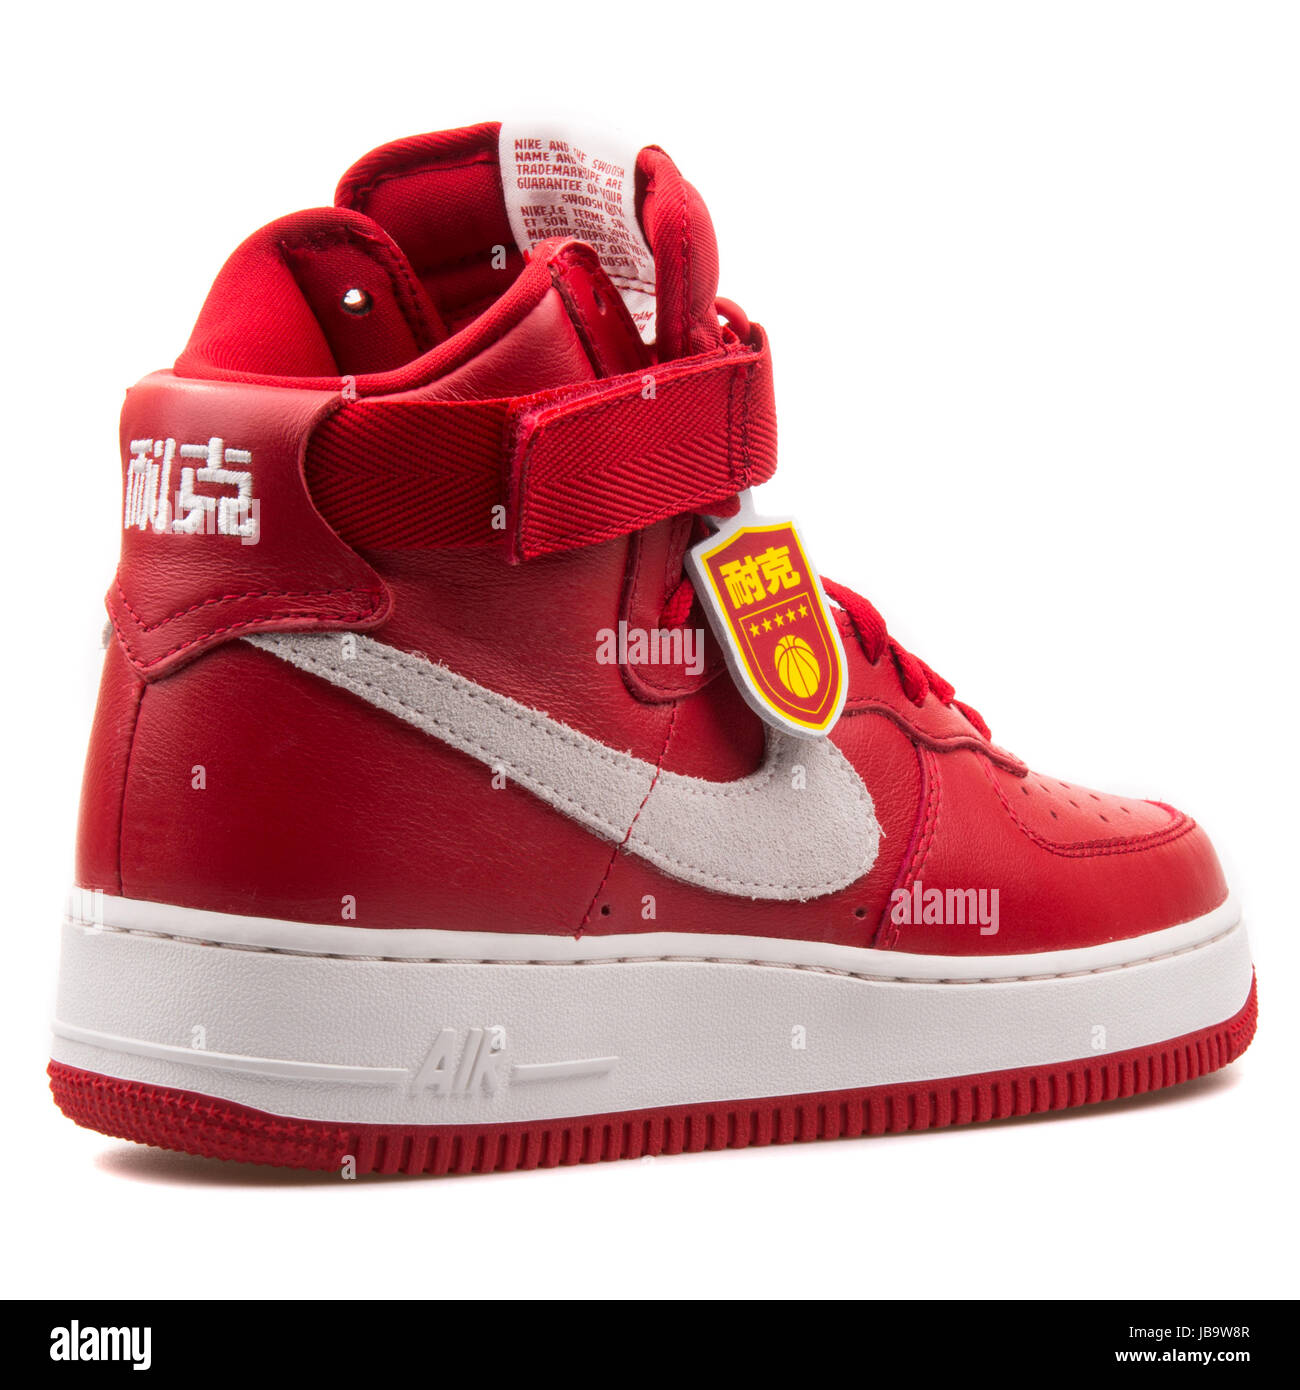 58d0ab7e29cd Nike Air Force 1 Hi Retro QS Gym Red and Summit White China Exclusive Men s  Retro Basketball Shoes - 743546-600